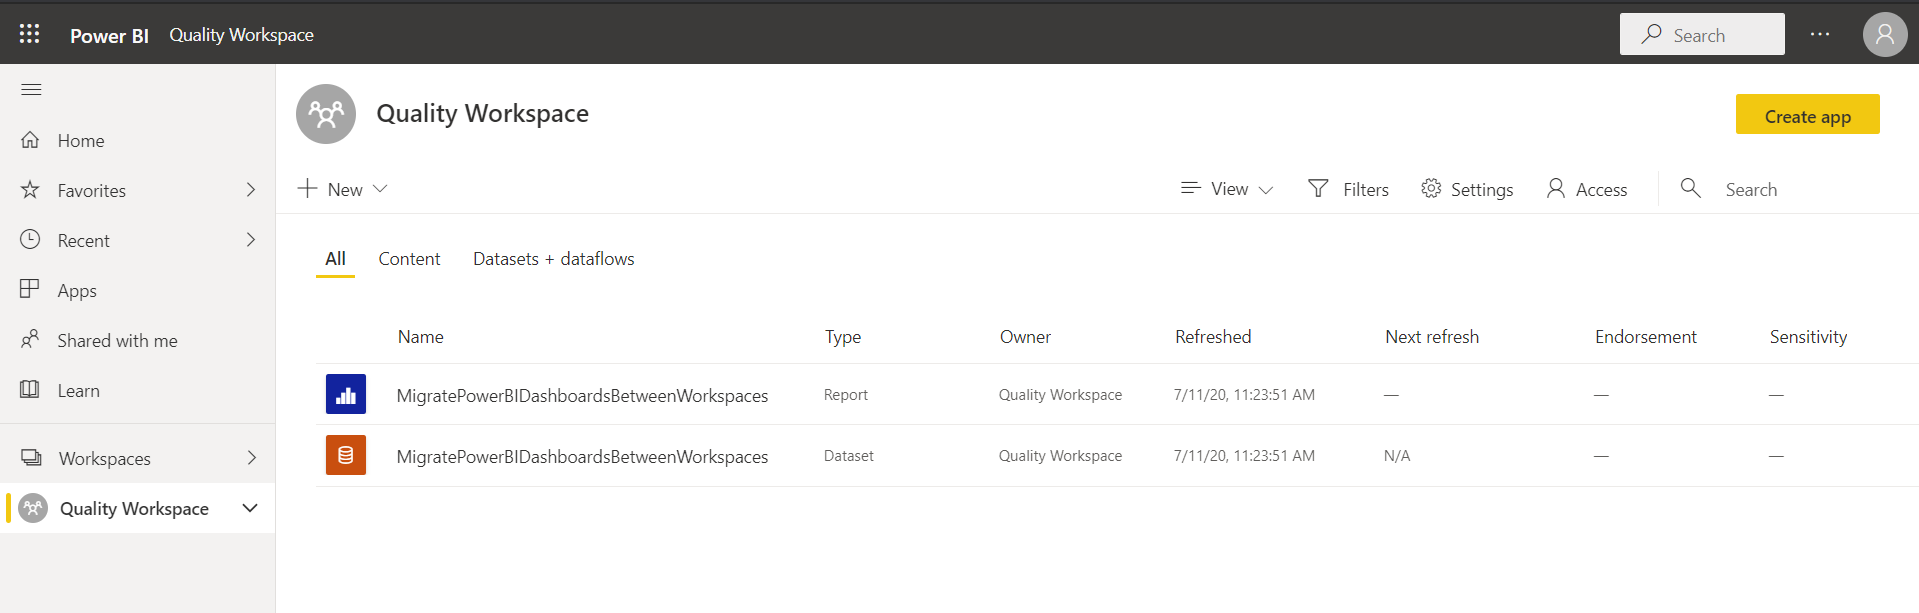 Power BI files uploaded to the new workspace